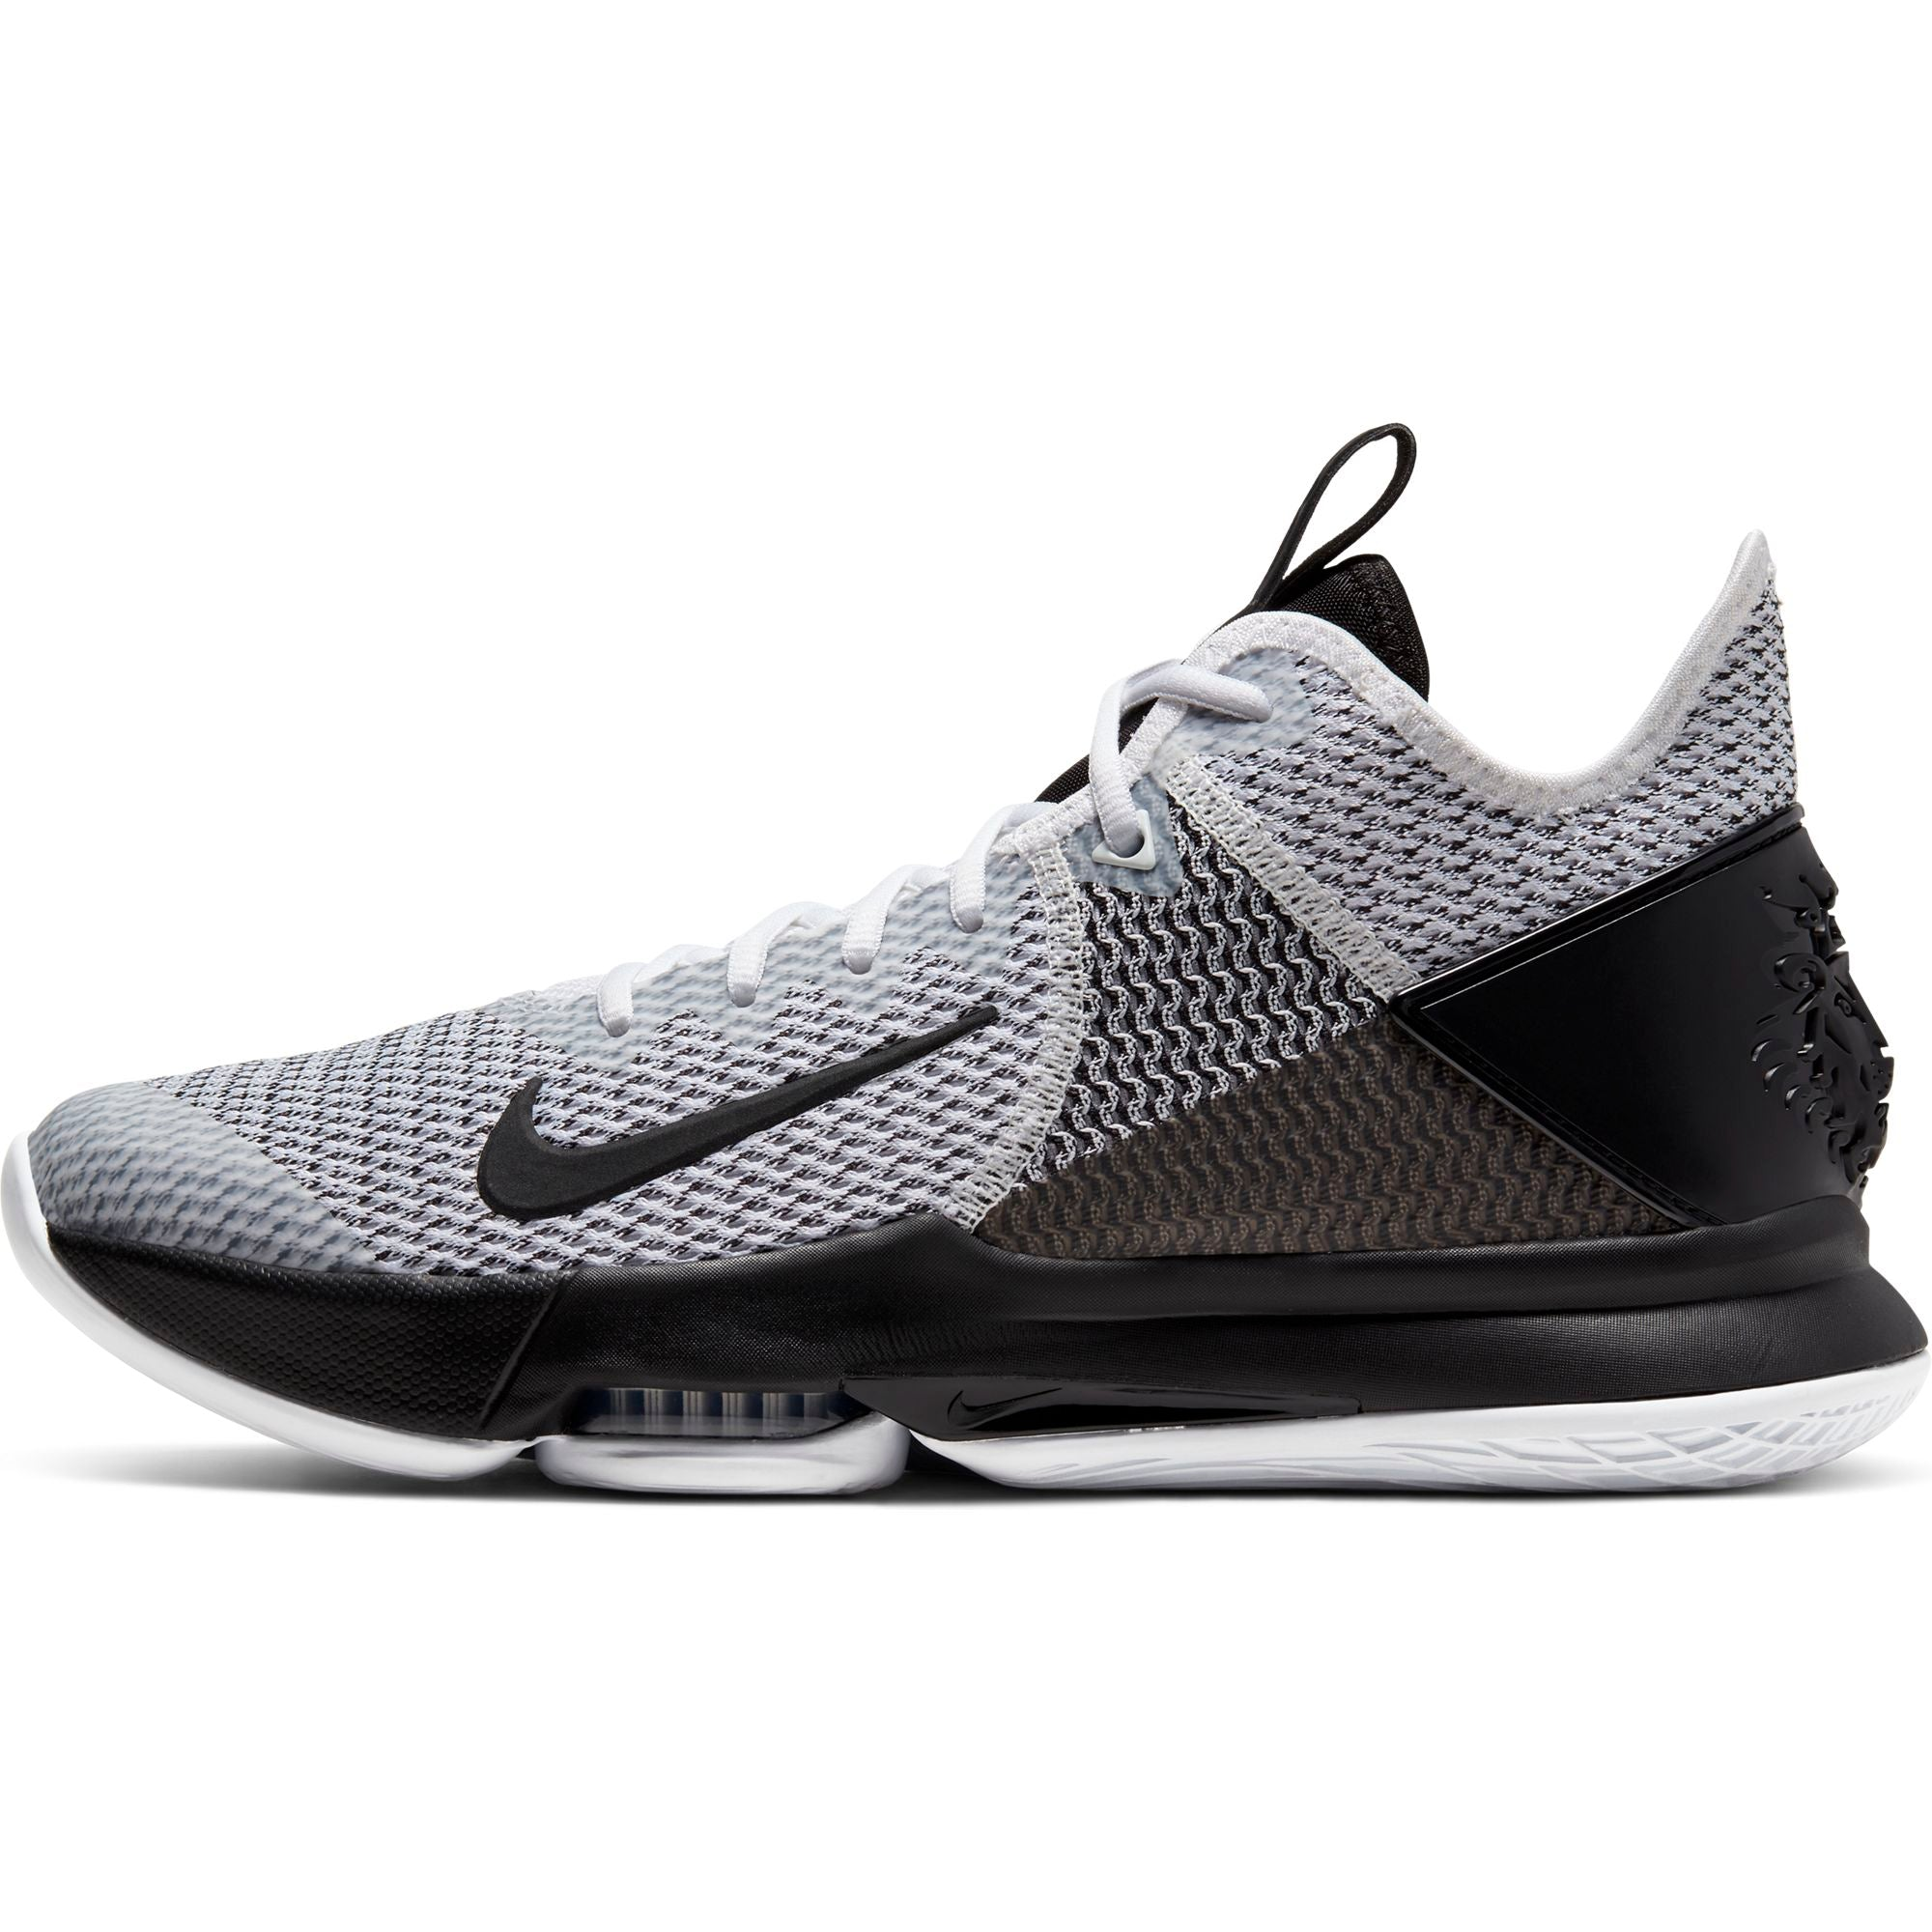 Nike Lebron Witness 4 Basketball Boot/shoe - NK-BV7427-101